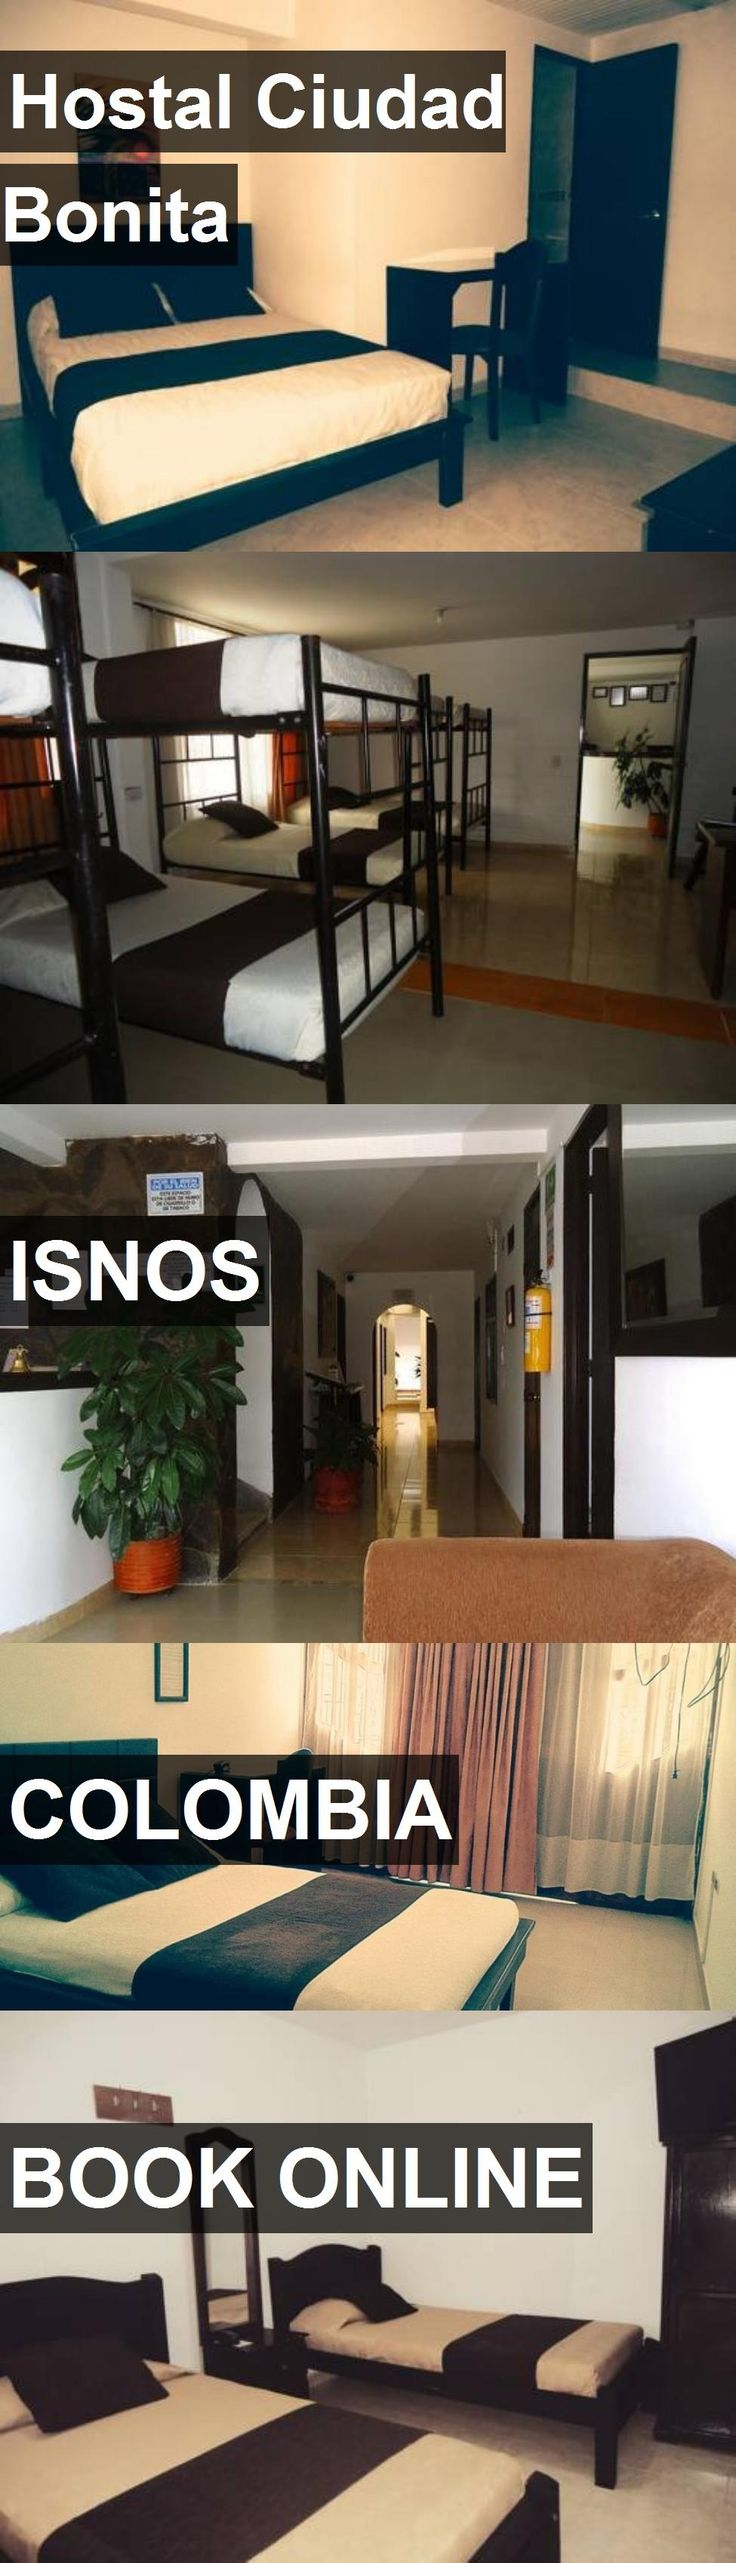 Hotel Hostal Ciudad Bonita in Isnos, Colombia. For more information, photos, reviews and best prices please follow the link. #Colombia #Isnos #travel #vacation #hotel